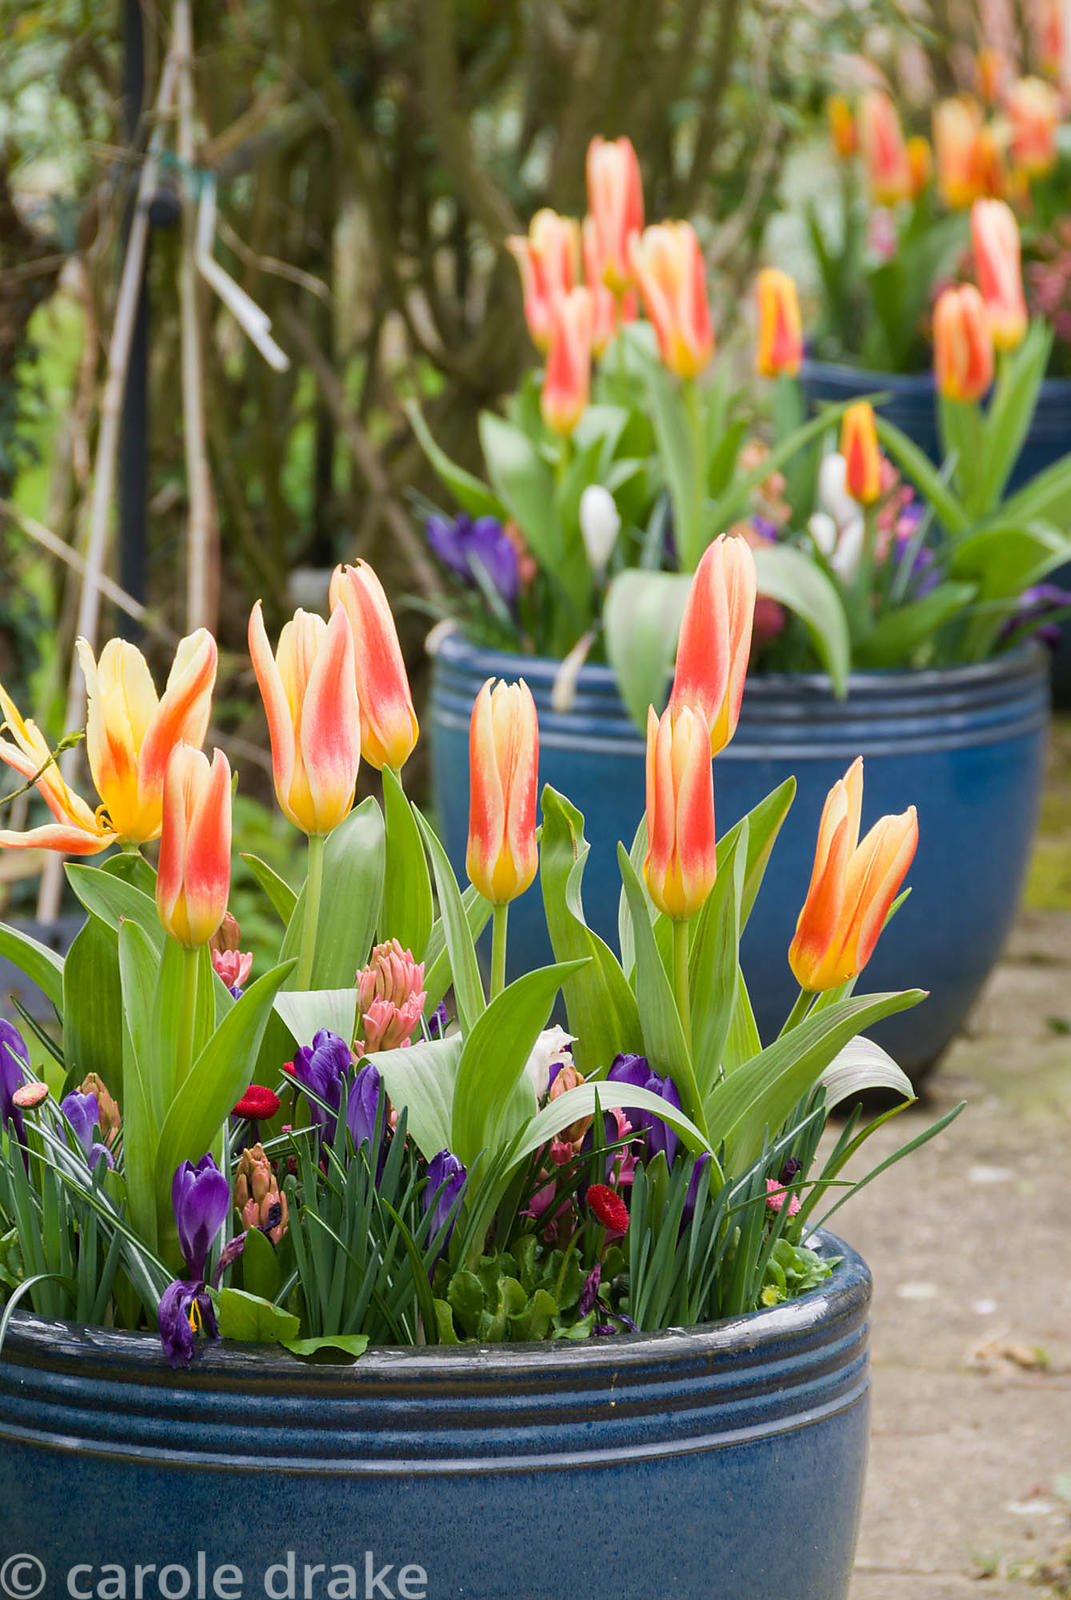 Containers of spring bulbs, tulips and hyacinths. Beechenwood Farm, Odiham, Hants, UK